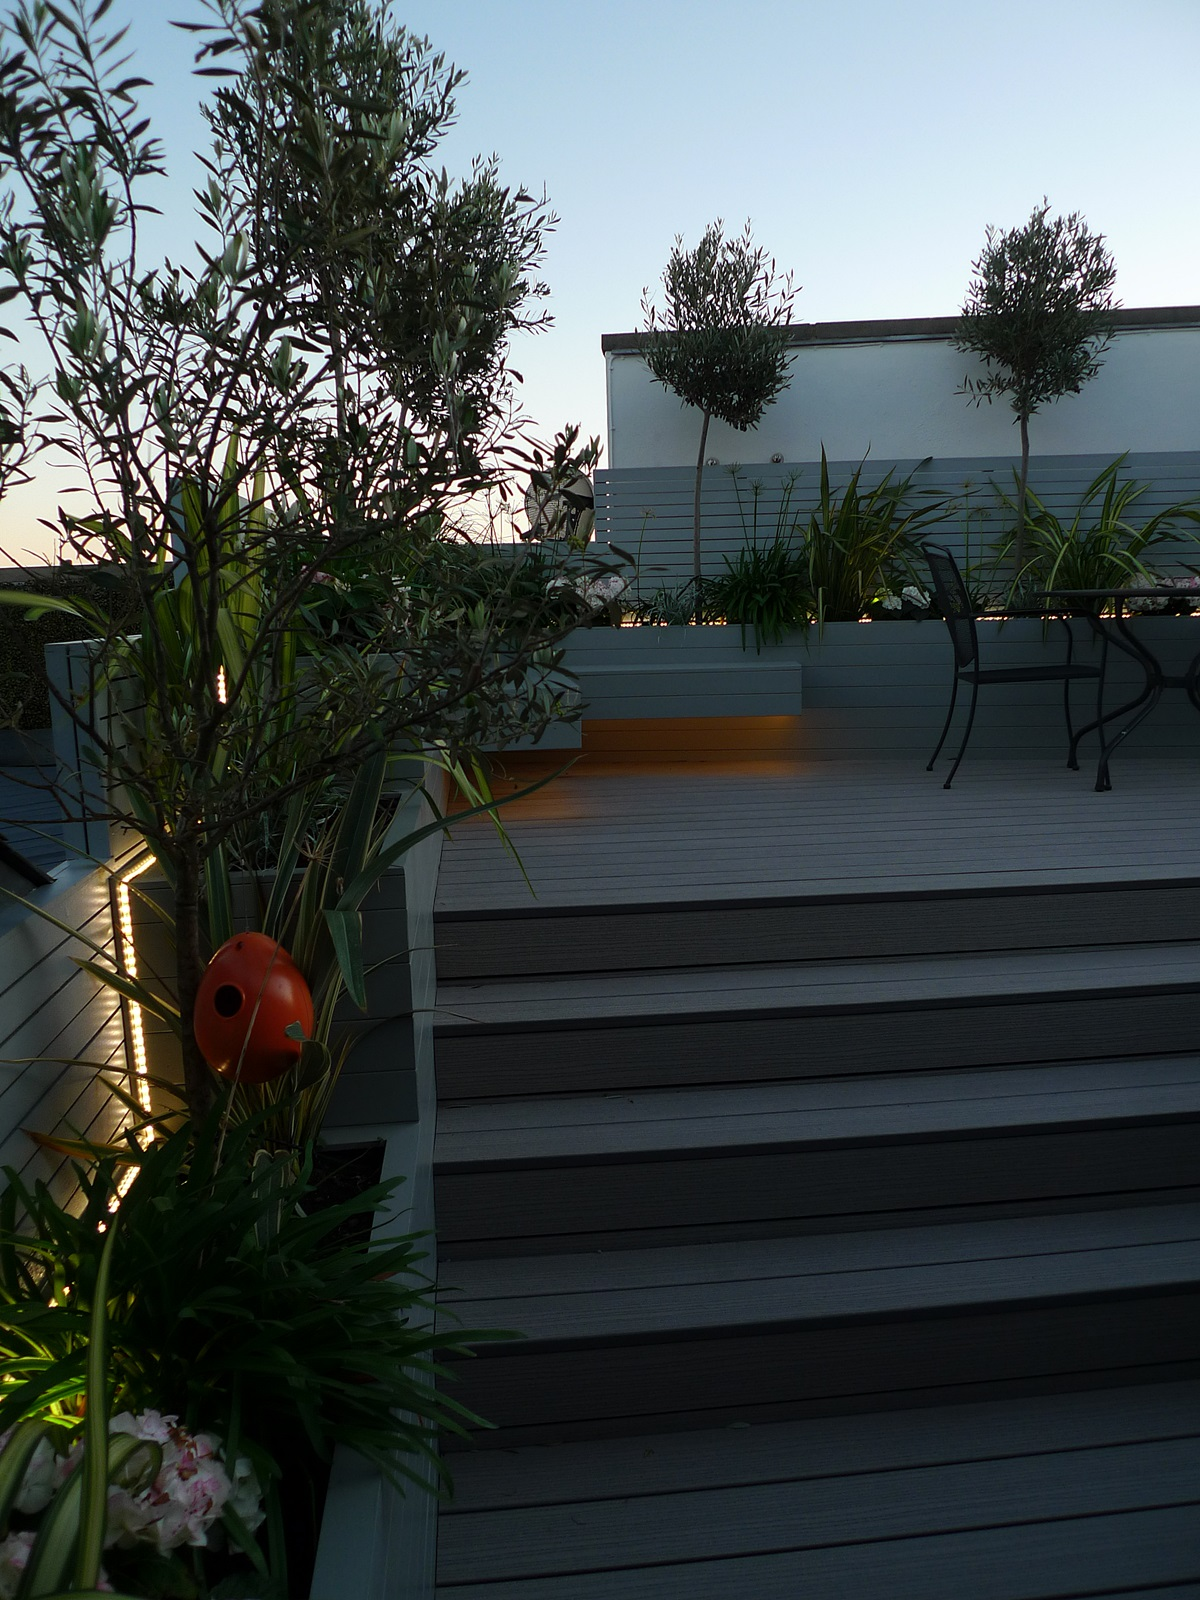 modern garden design roof garden fulham chelsea tower bridge canary wharf london